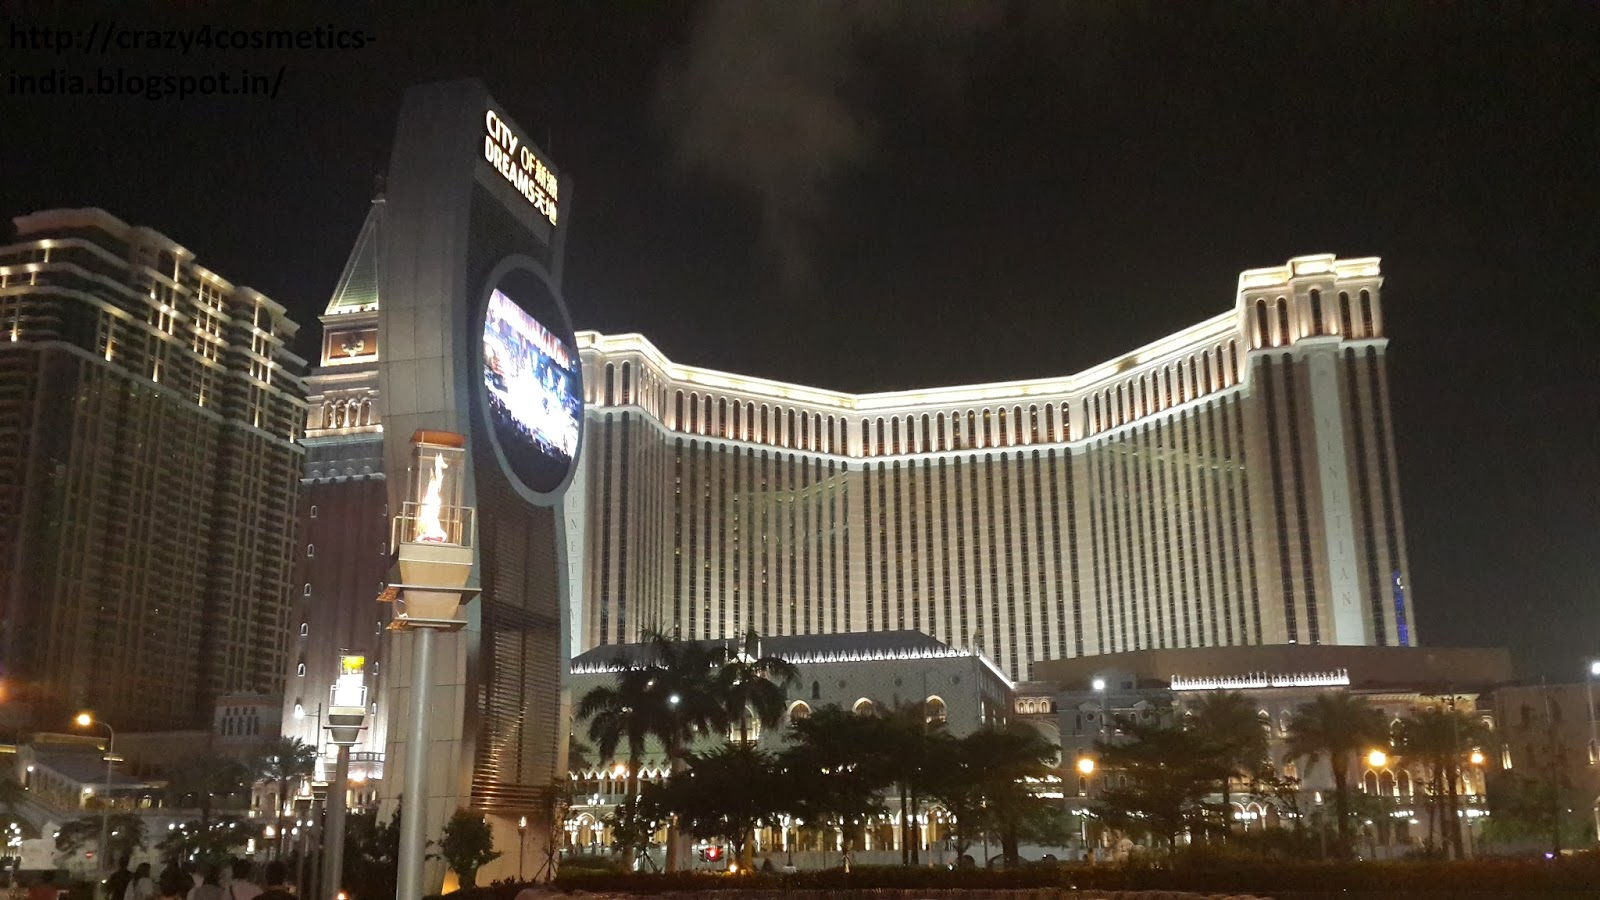 Venetian Macau at night